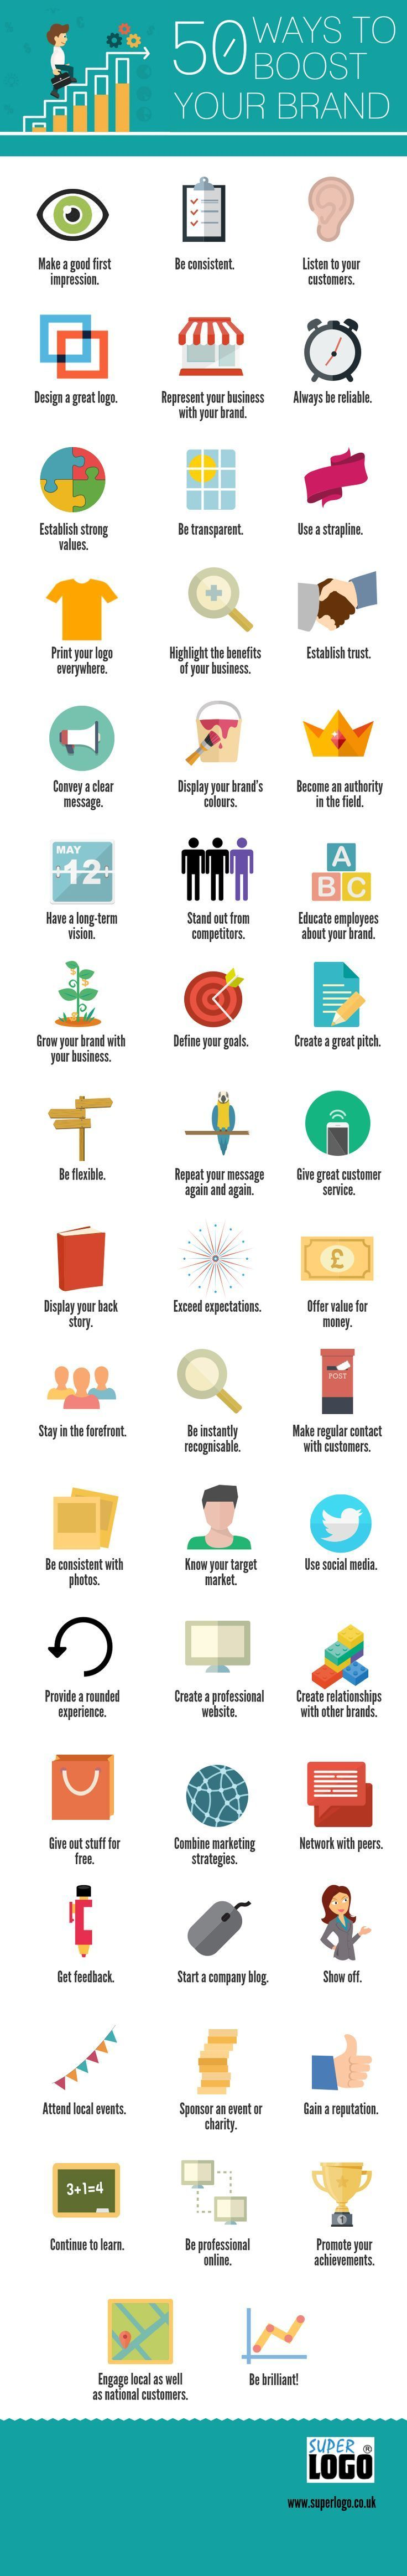 50 Ways to Boost Your Brand [Infographic] | Digital Marketing AND Take this Free Full Lenght Video Training on HOW to Start an Online Business